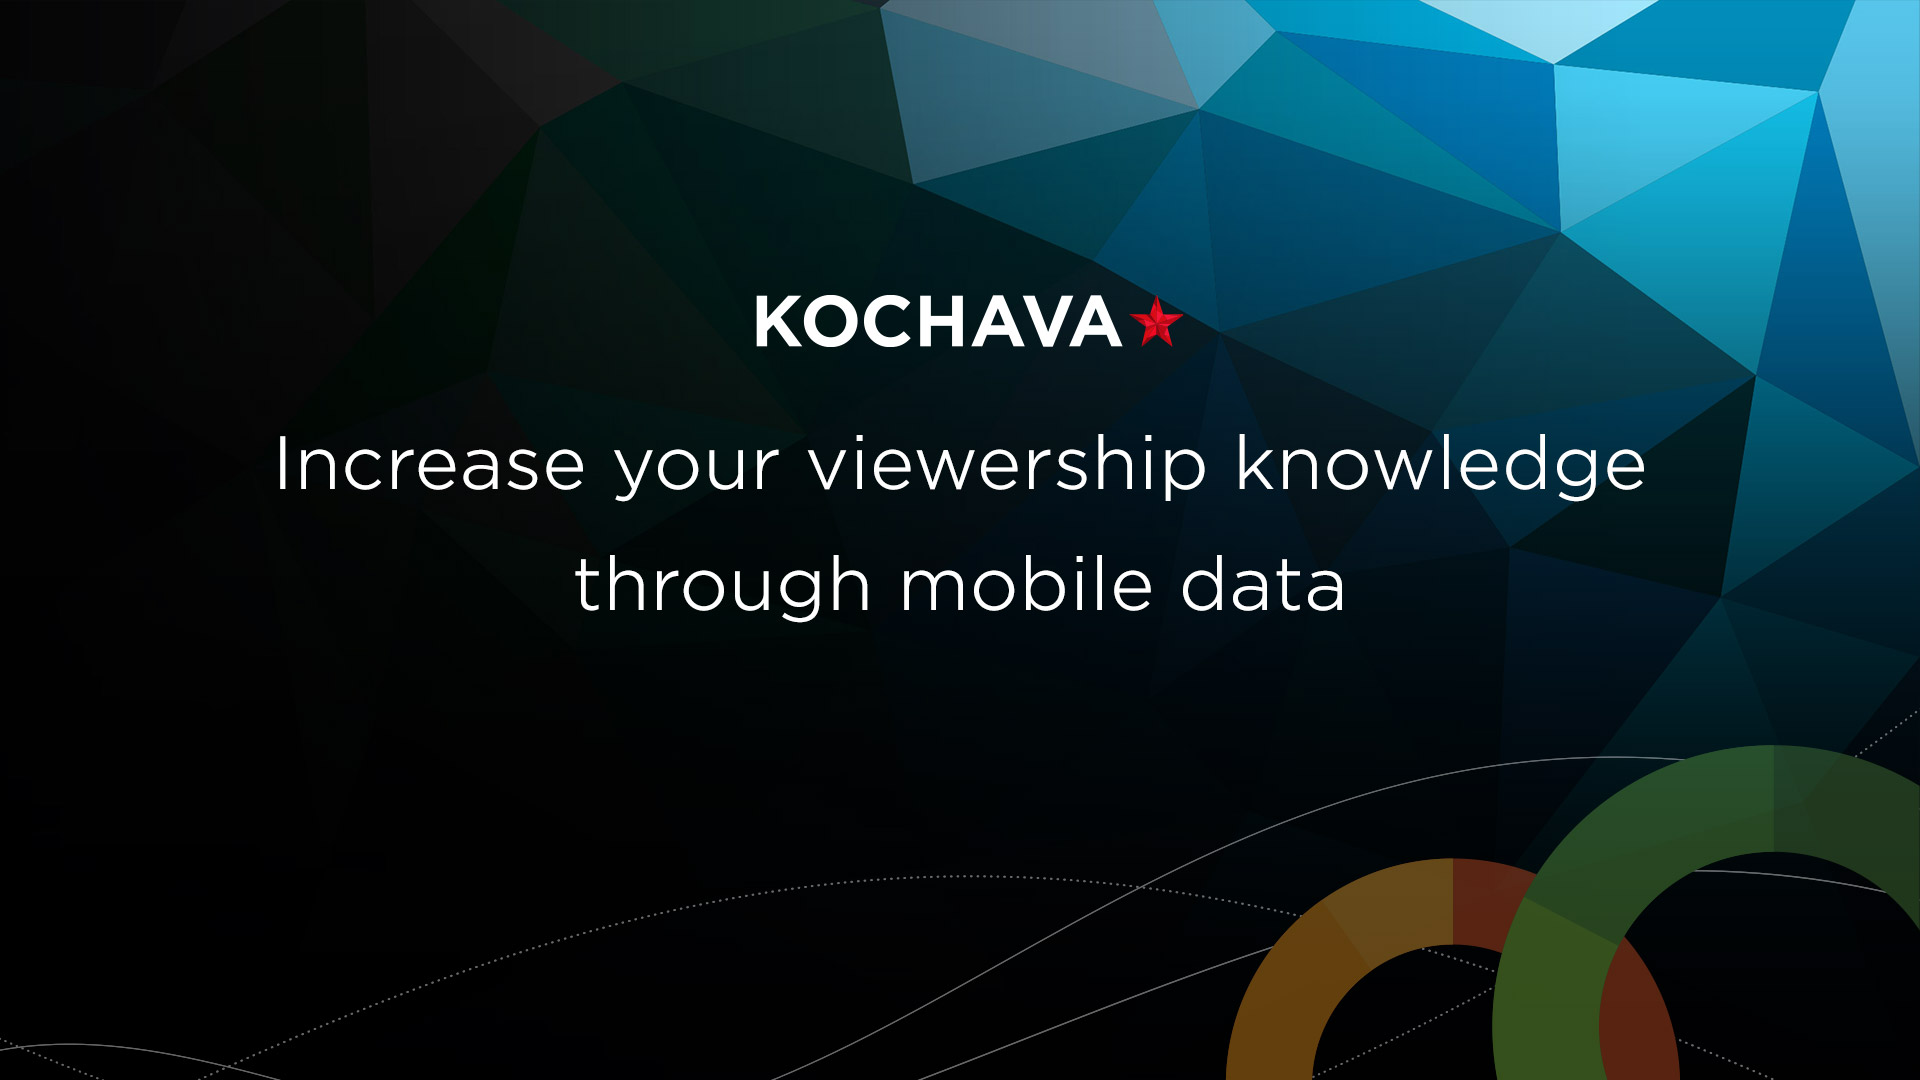 Increase Viewership Through Mobile Data